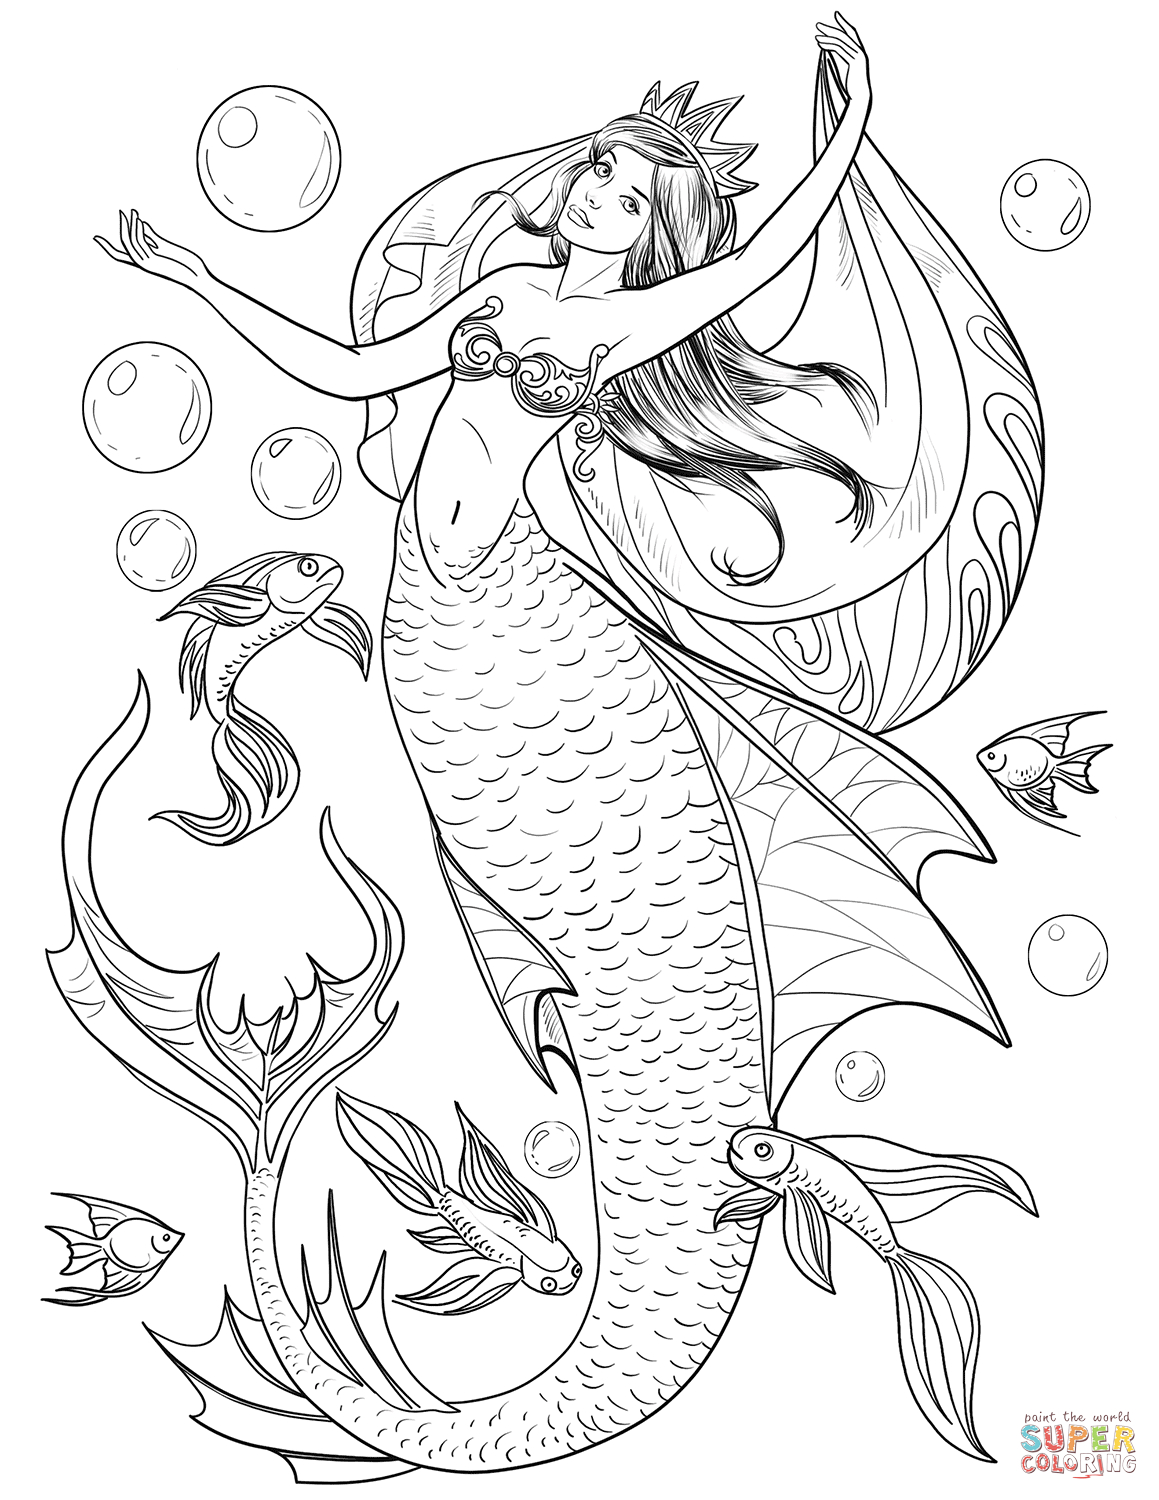 Mermaid Coloring Pages | Free Coloring Pages - Free Printable Mermaid Coloring Pages For Adults